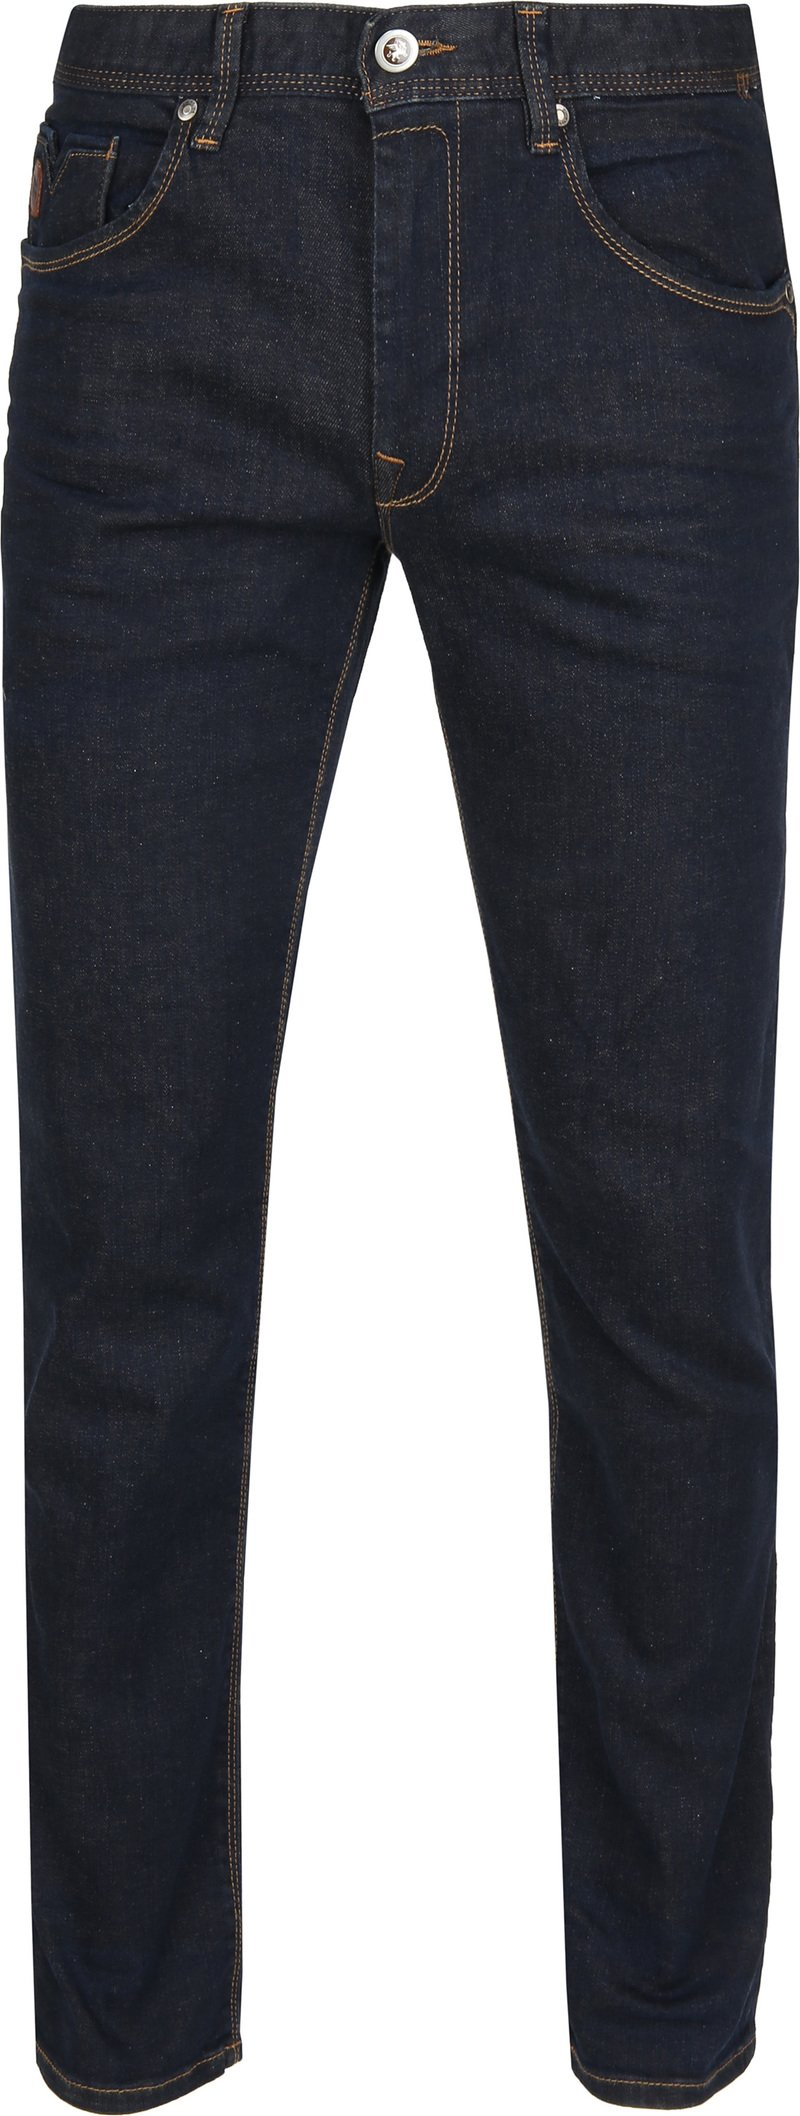 Vanguard V7 Slim Jeans Stretch CCR photo 0